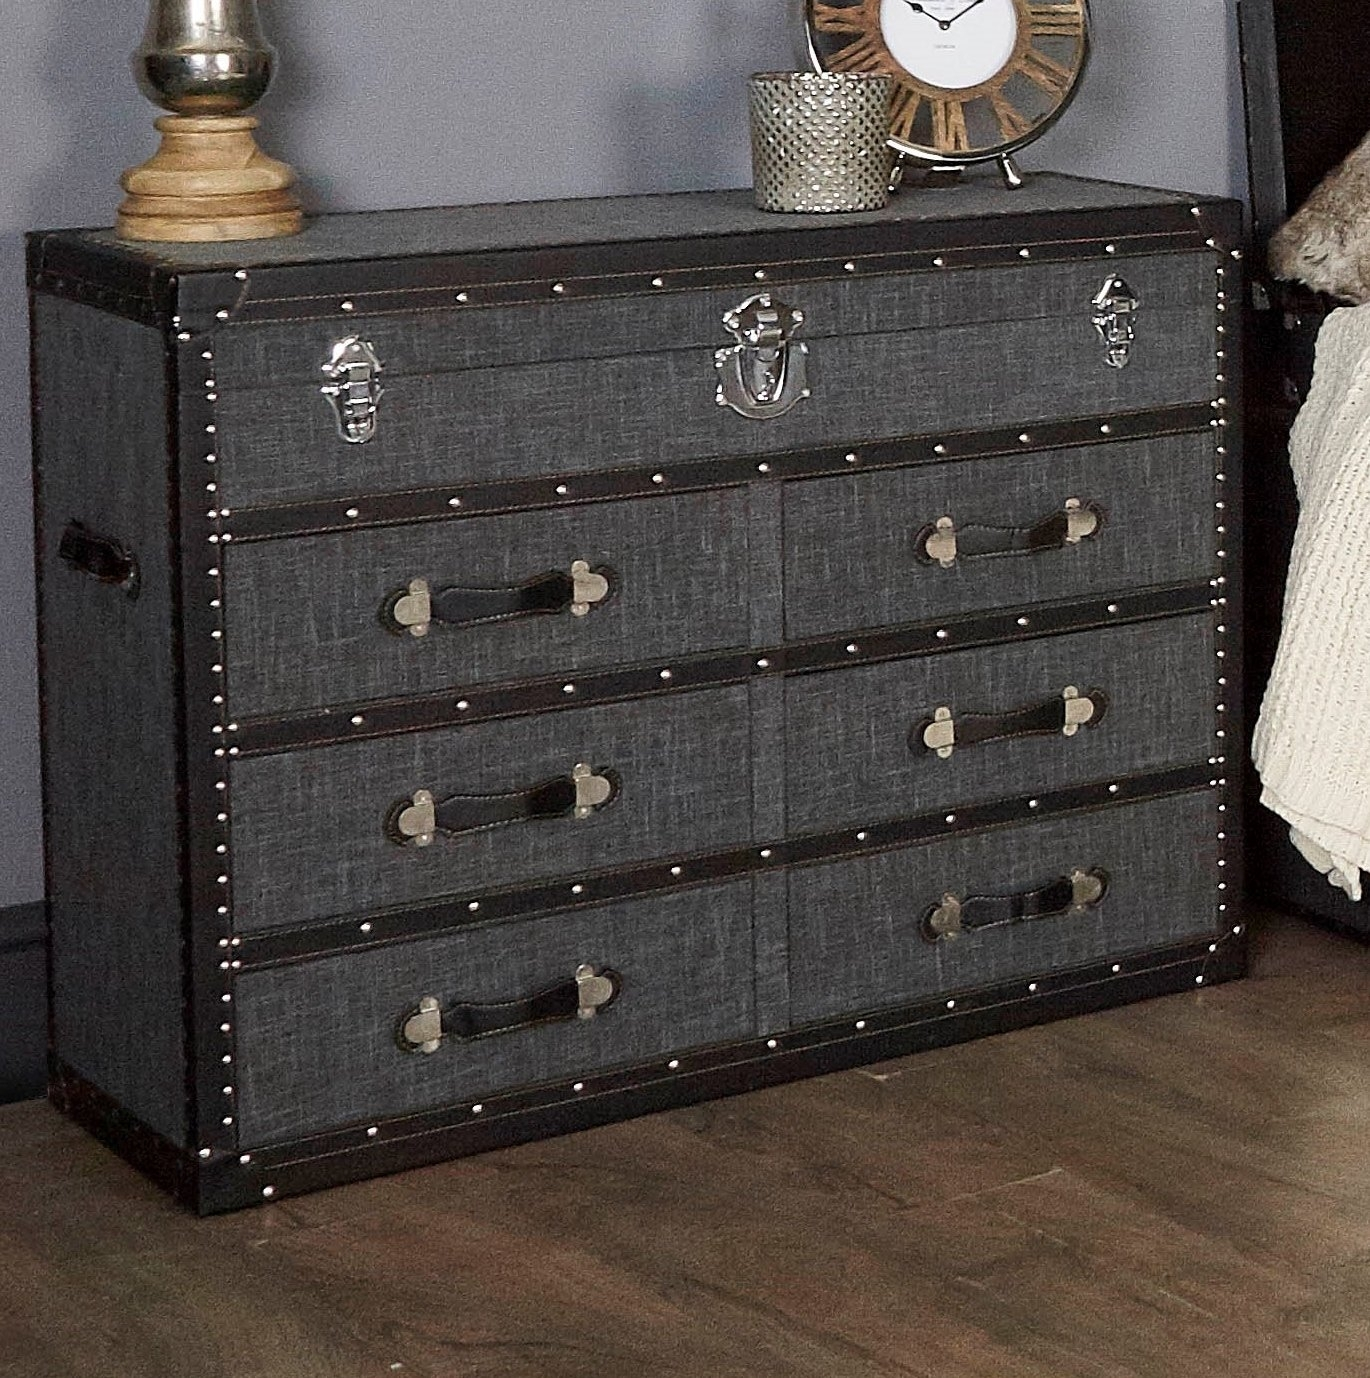 Borough Wharf Casimir 6 Drawer Chest Of Drawers & Reviews | Wayfair within Leven Wine Sideboards (Image 4 of 30)